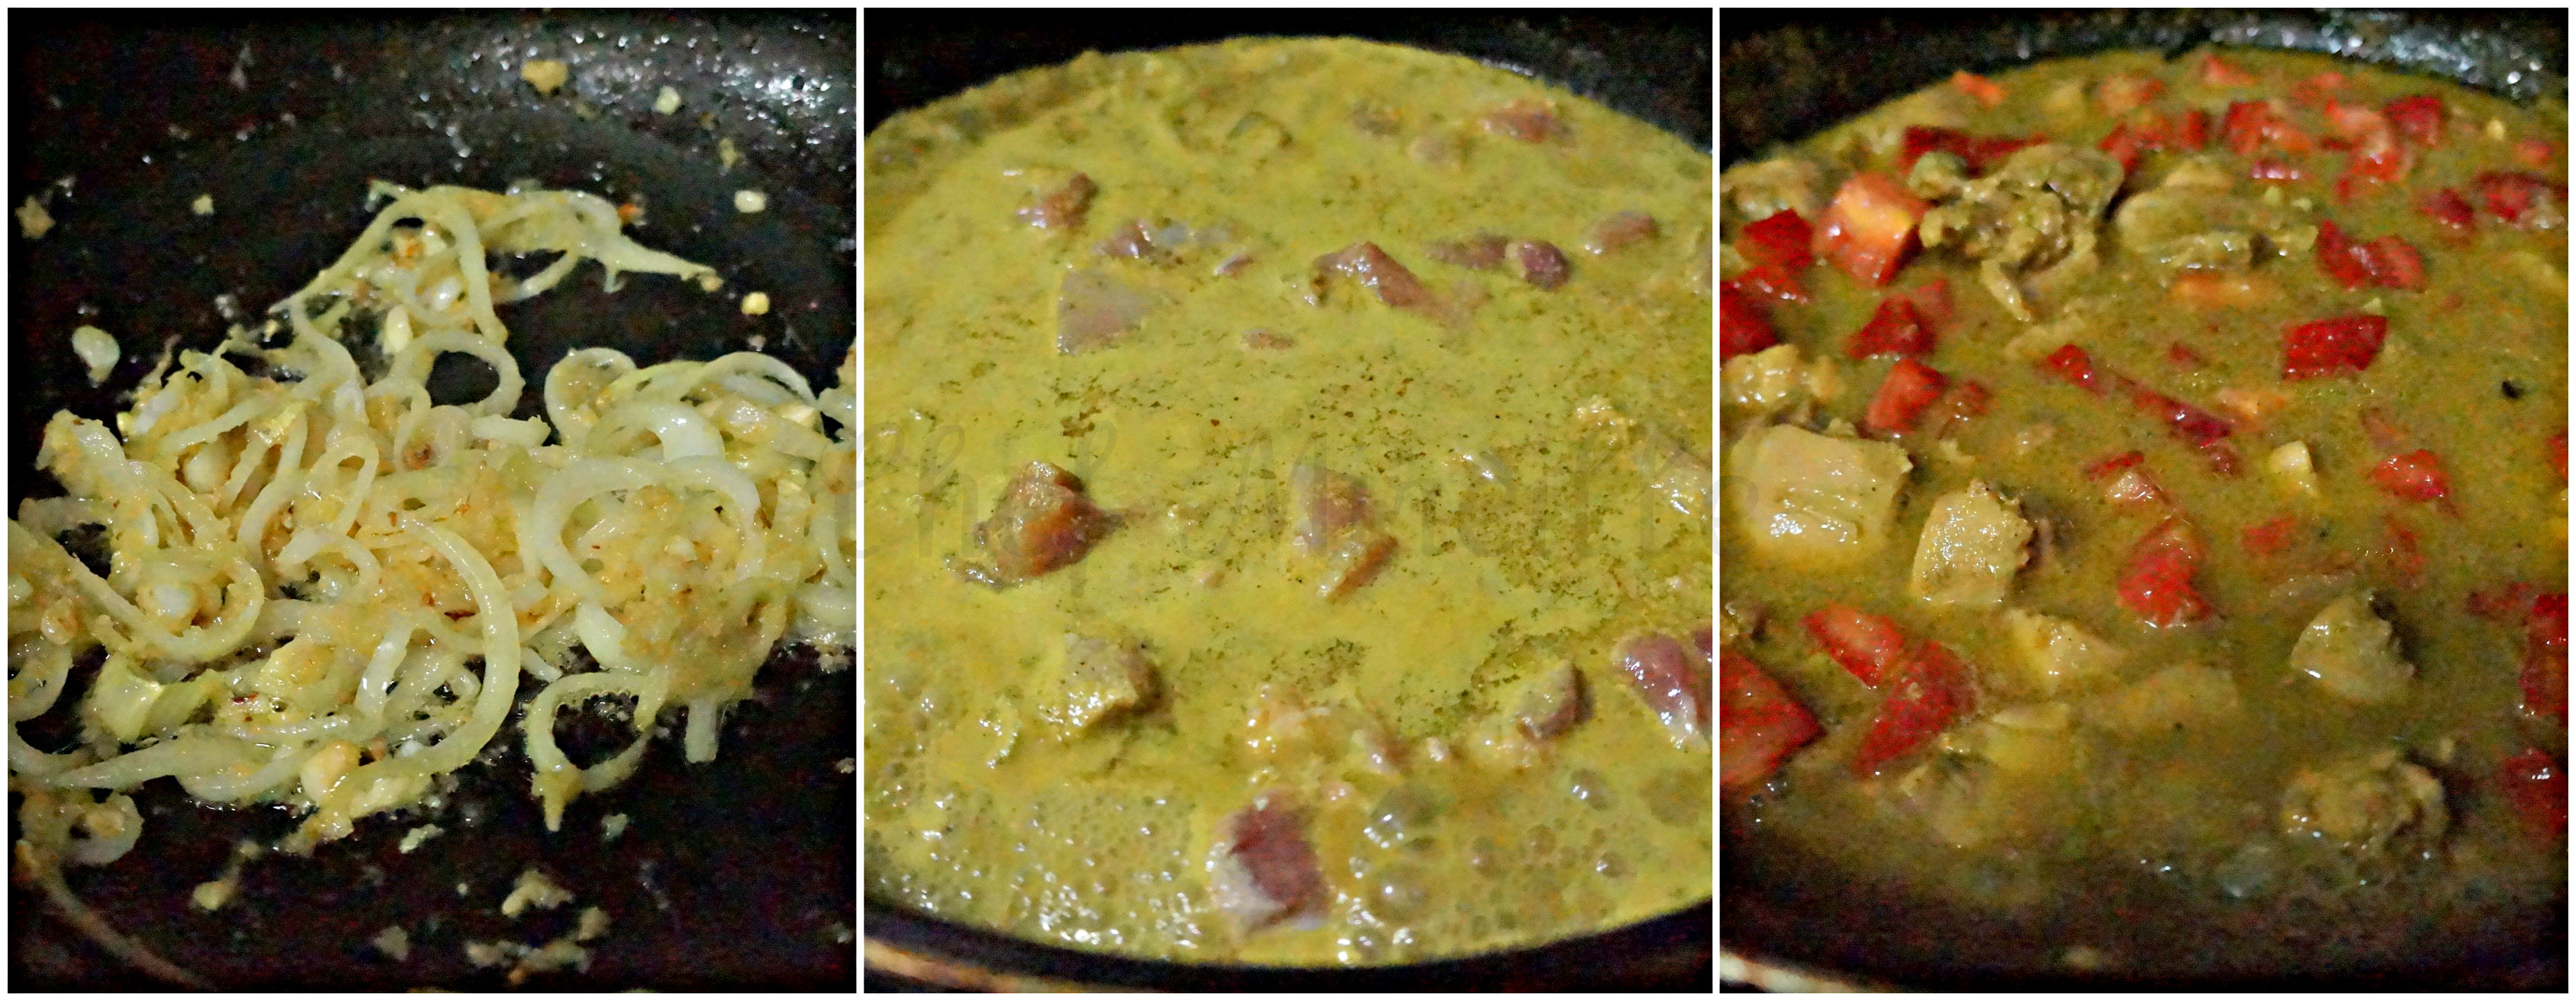 Making Malagasy Curry Chicken